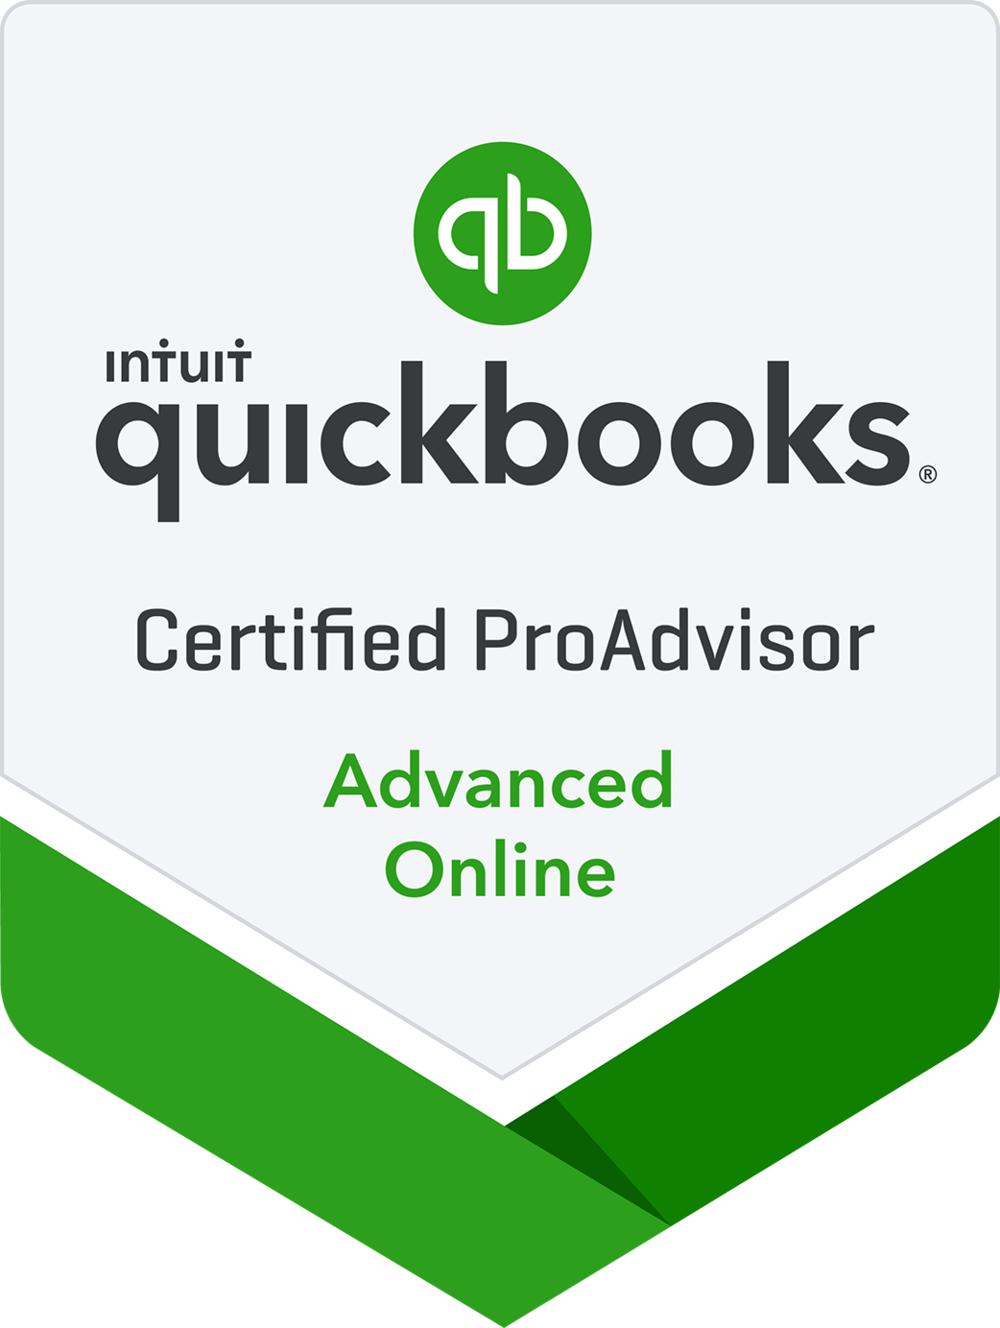 Minneapolis QuickBooks® Certified ProAdvisor Advanced Online